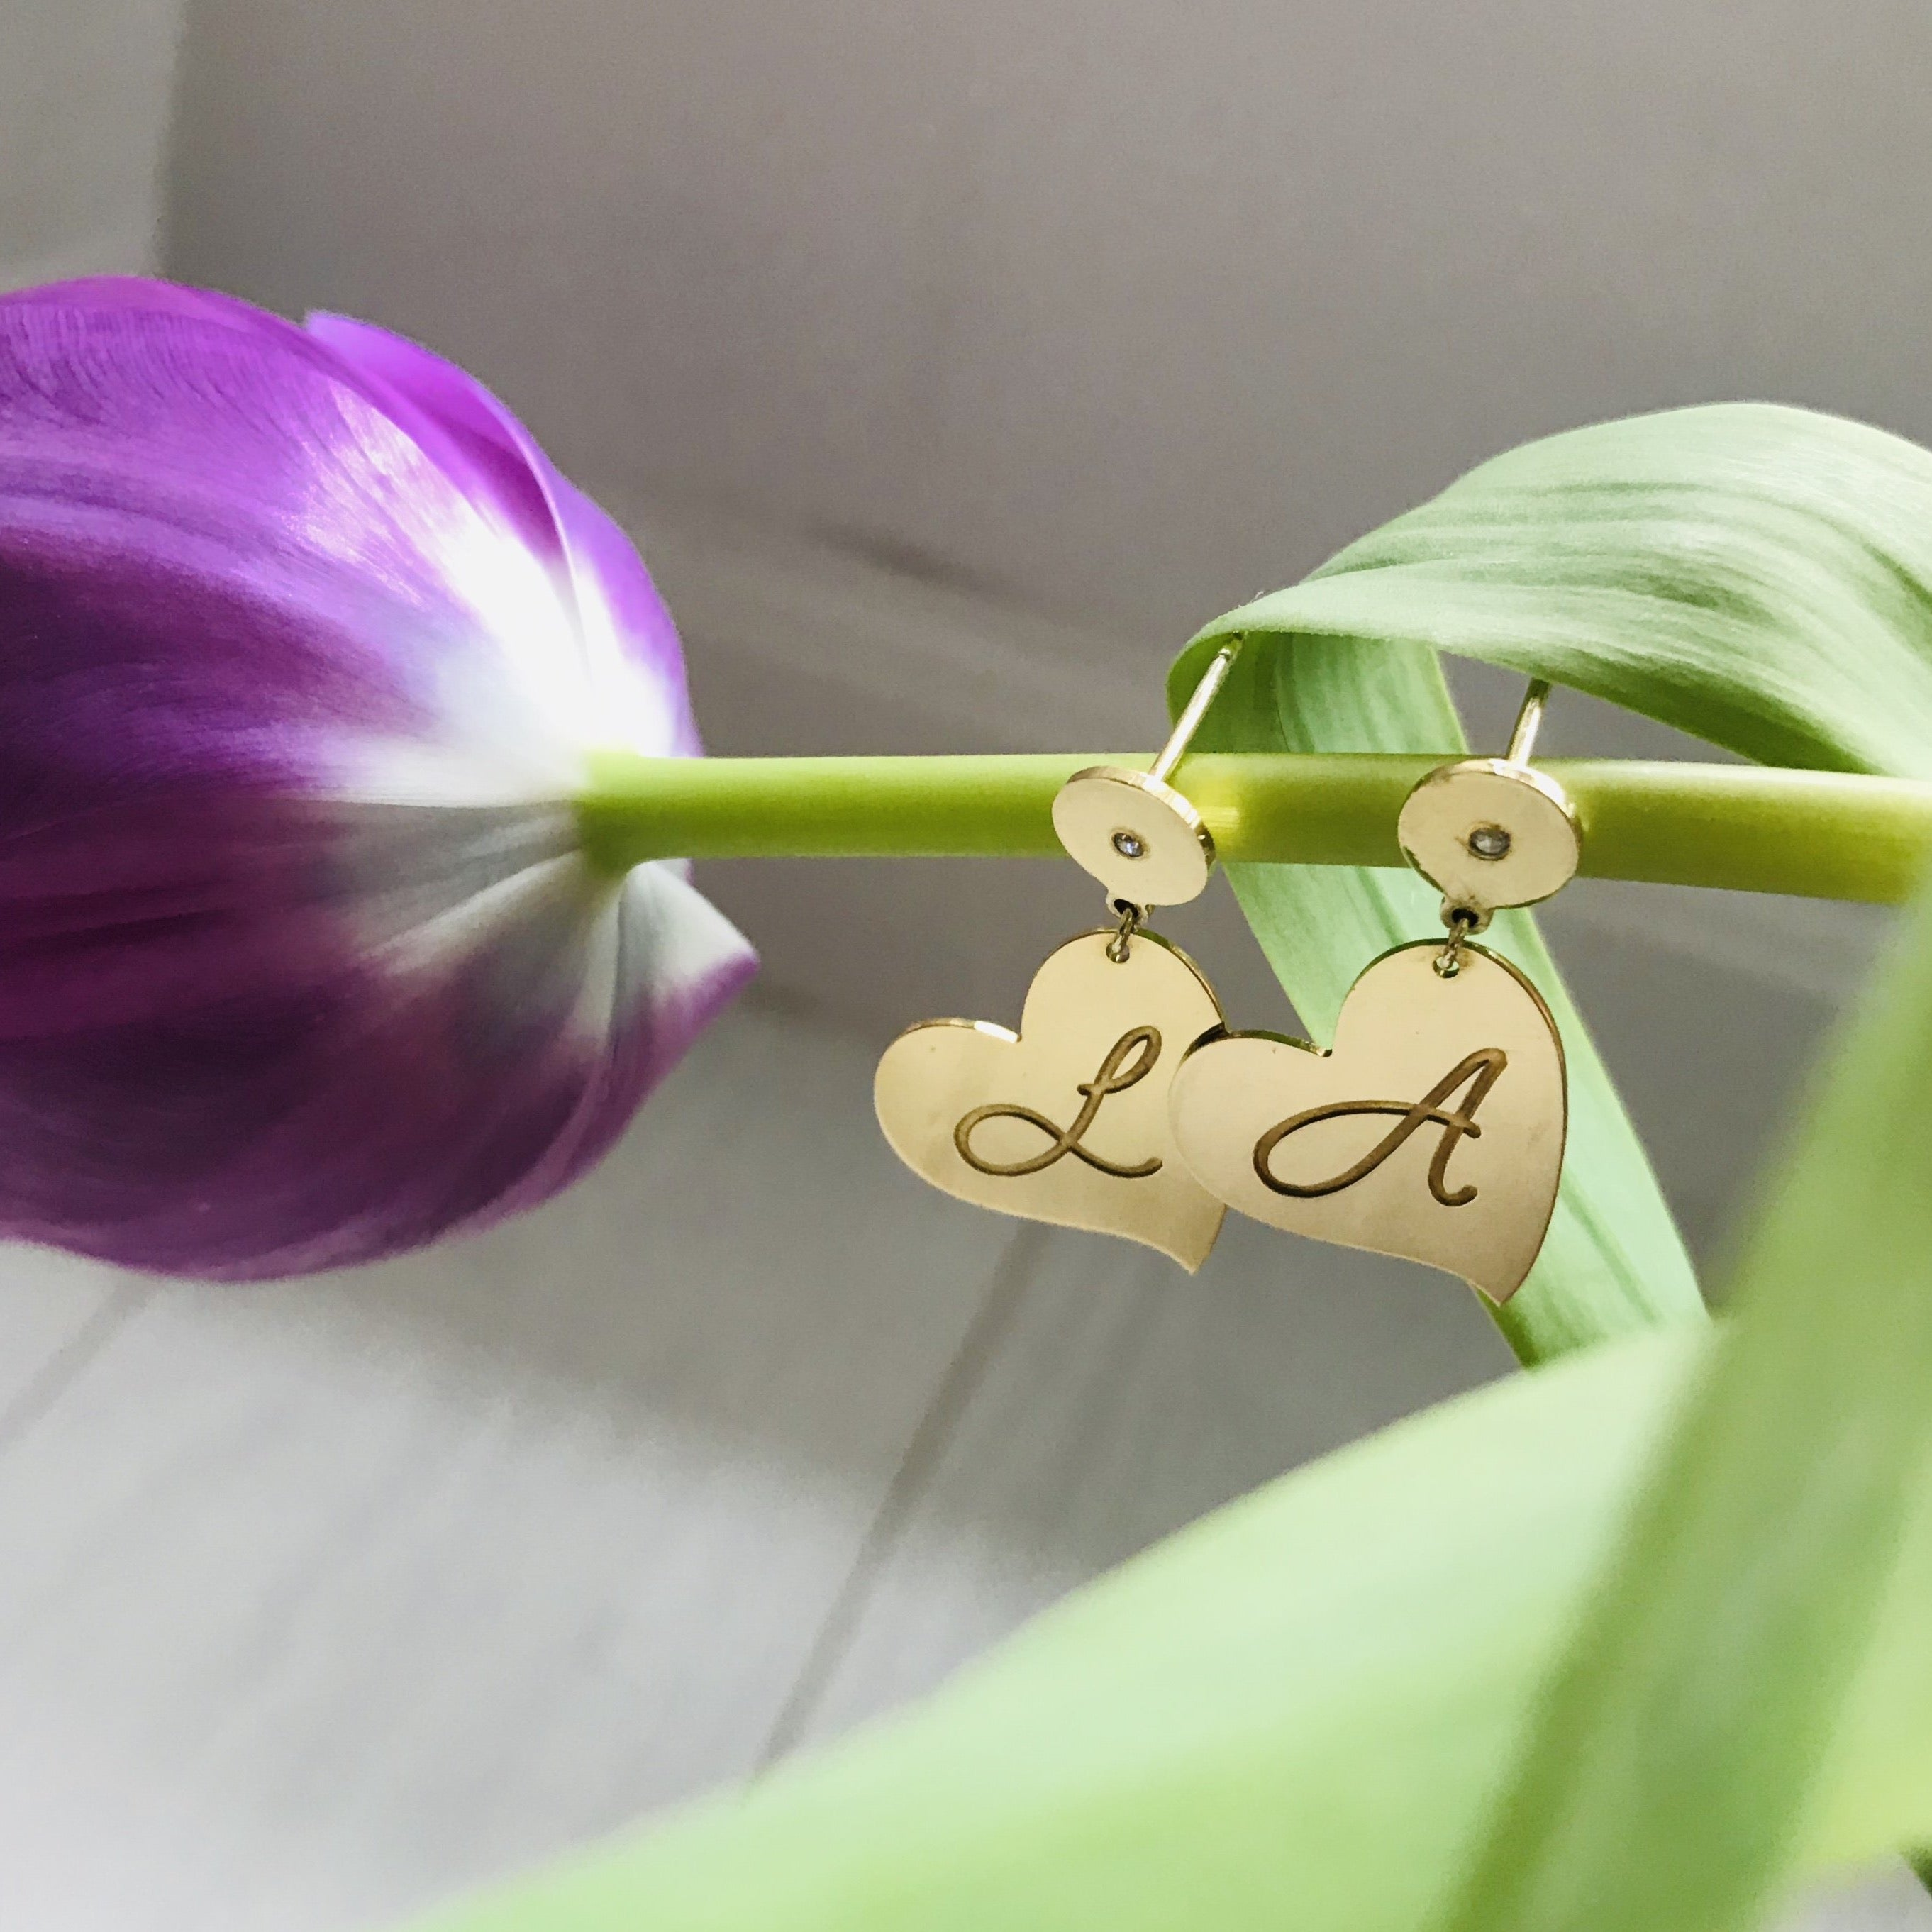 MON COEUR earrings - BYVELA designer jewellery in silver and gold